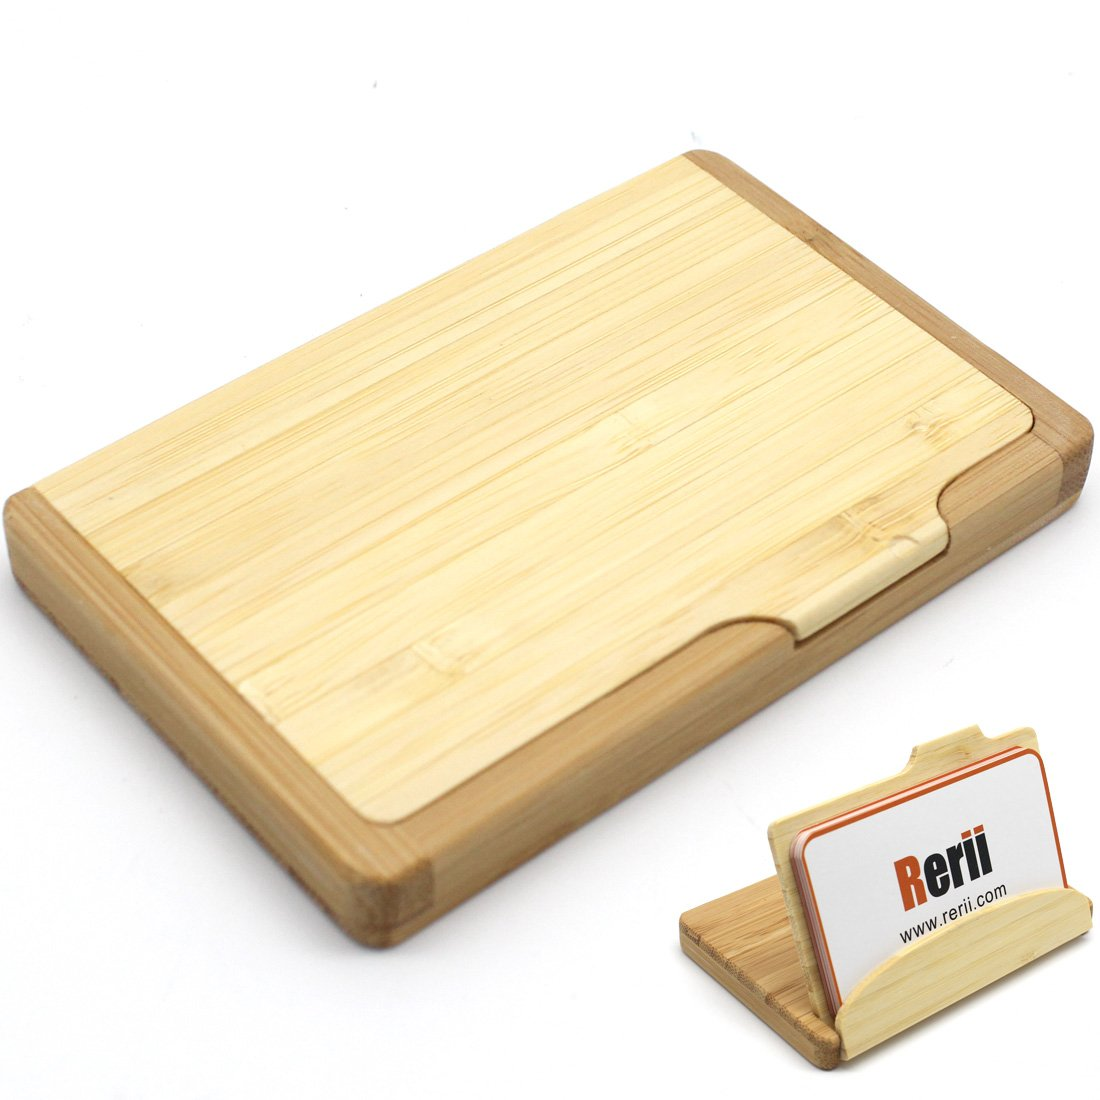 Rerii Wood Bamboo Business Card Holder, Name Card Case Stand ...